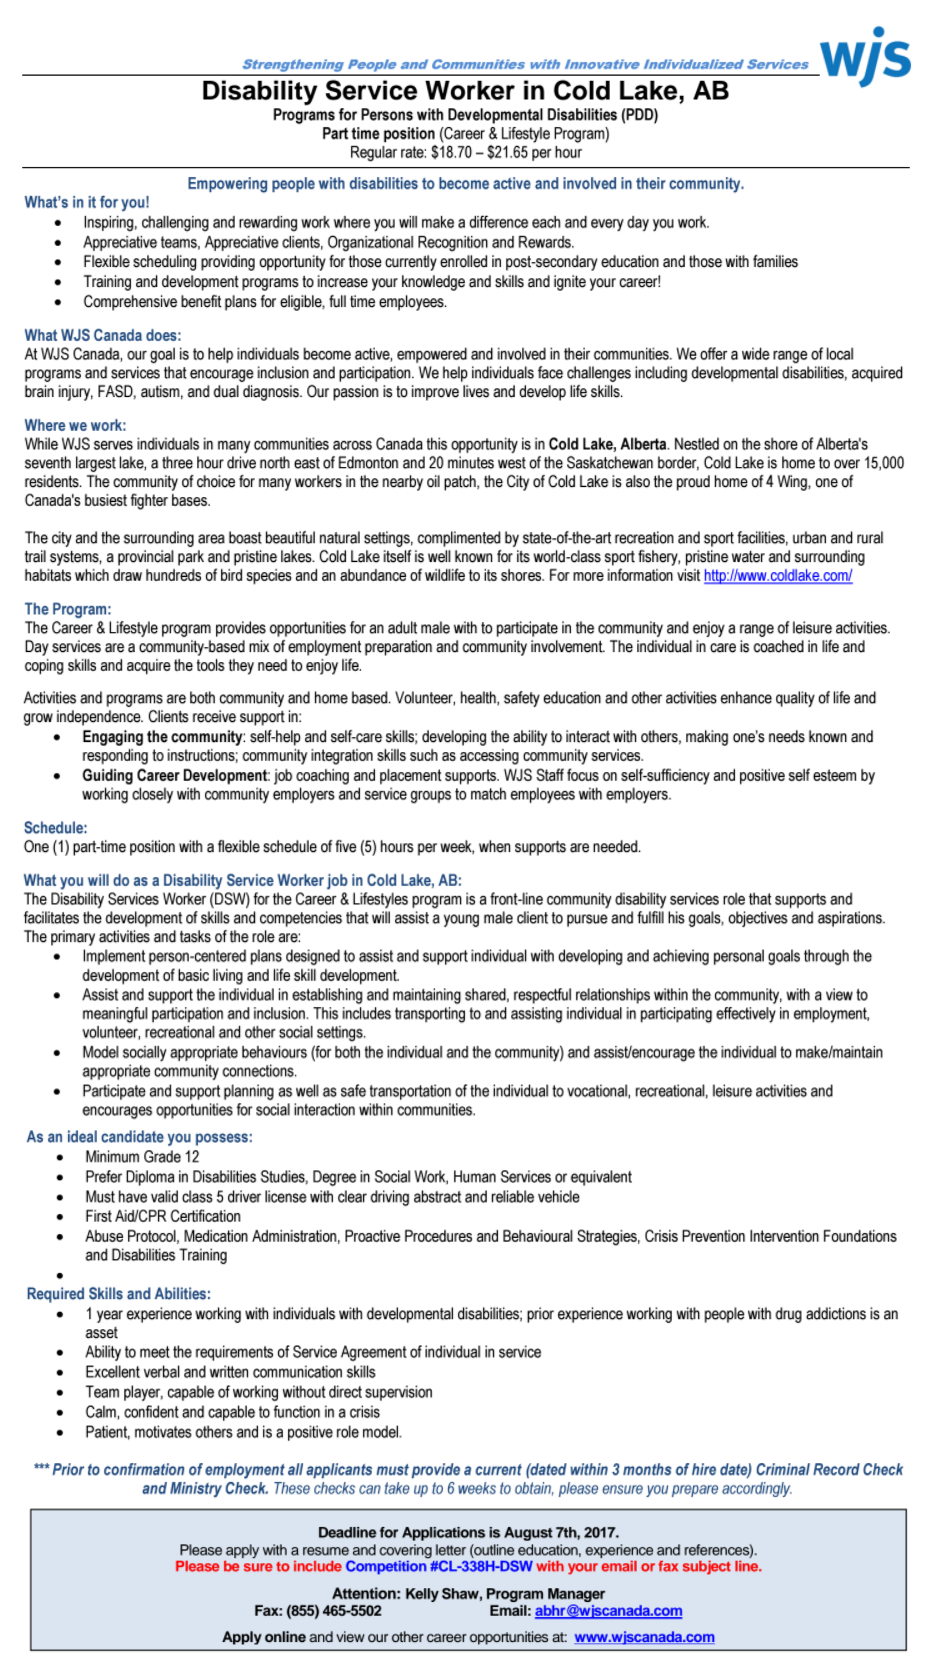 Wsj 2 Disability Service Worker Jobs Wsj Disability Services Worker